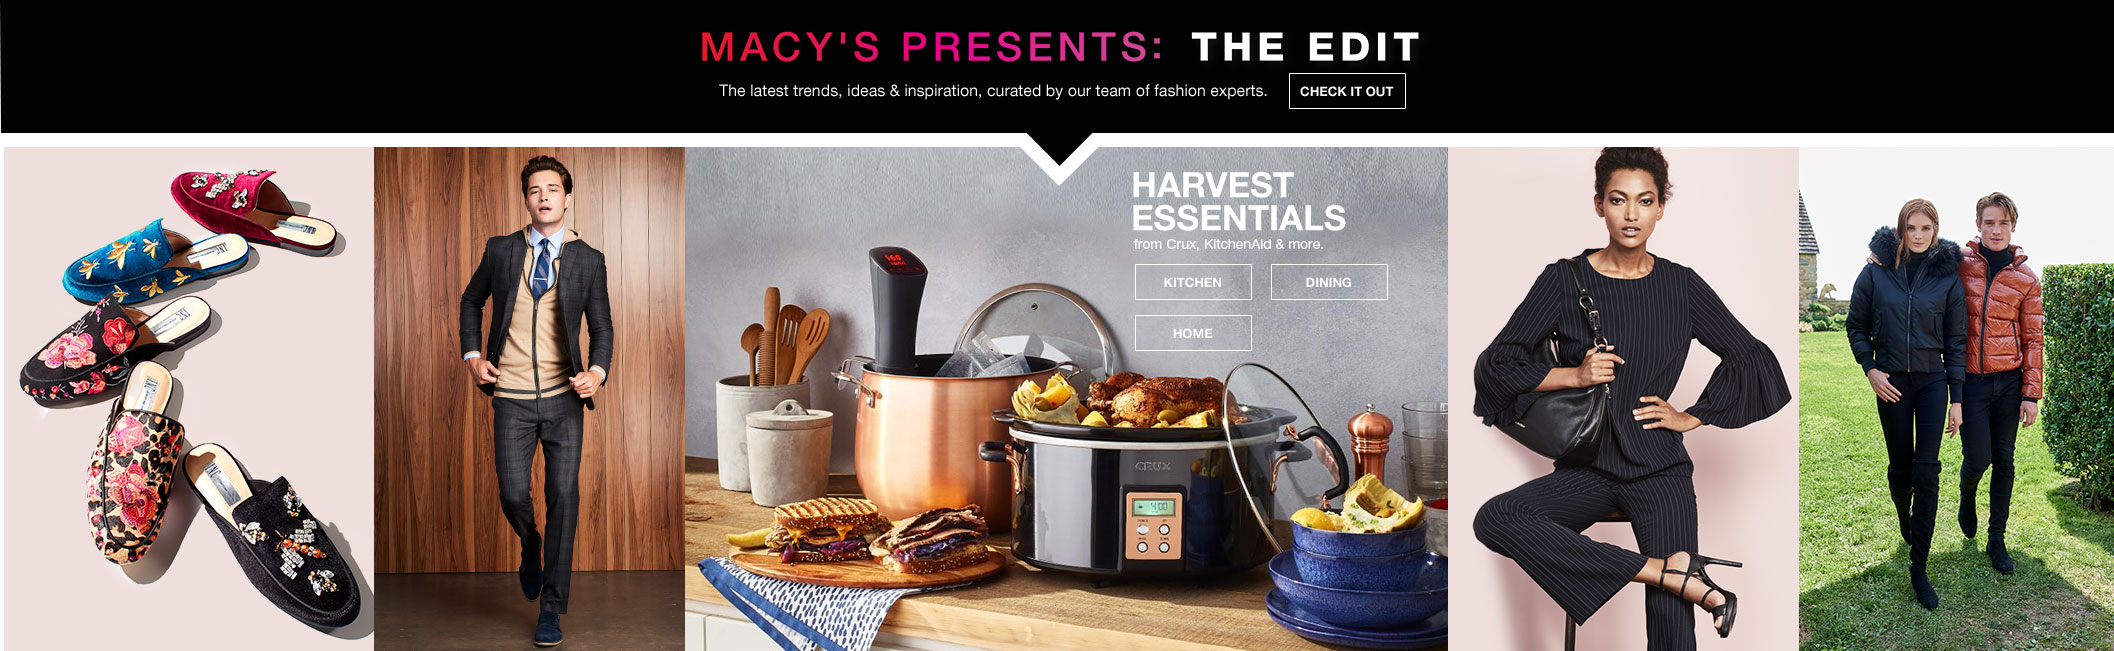 Macy's presents: the edit. The latest trends, ideas and inspiration, curated by our team of fashion experts. Harvest essentials from crux, kitchenaid and more.